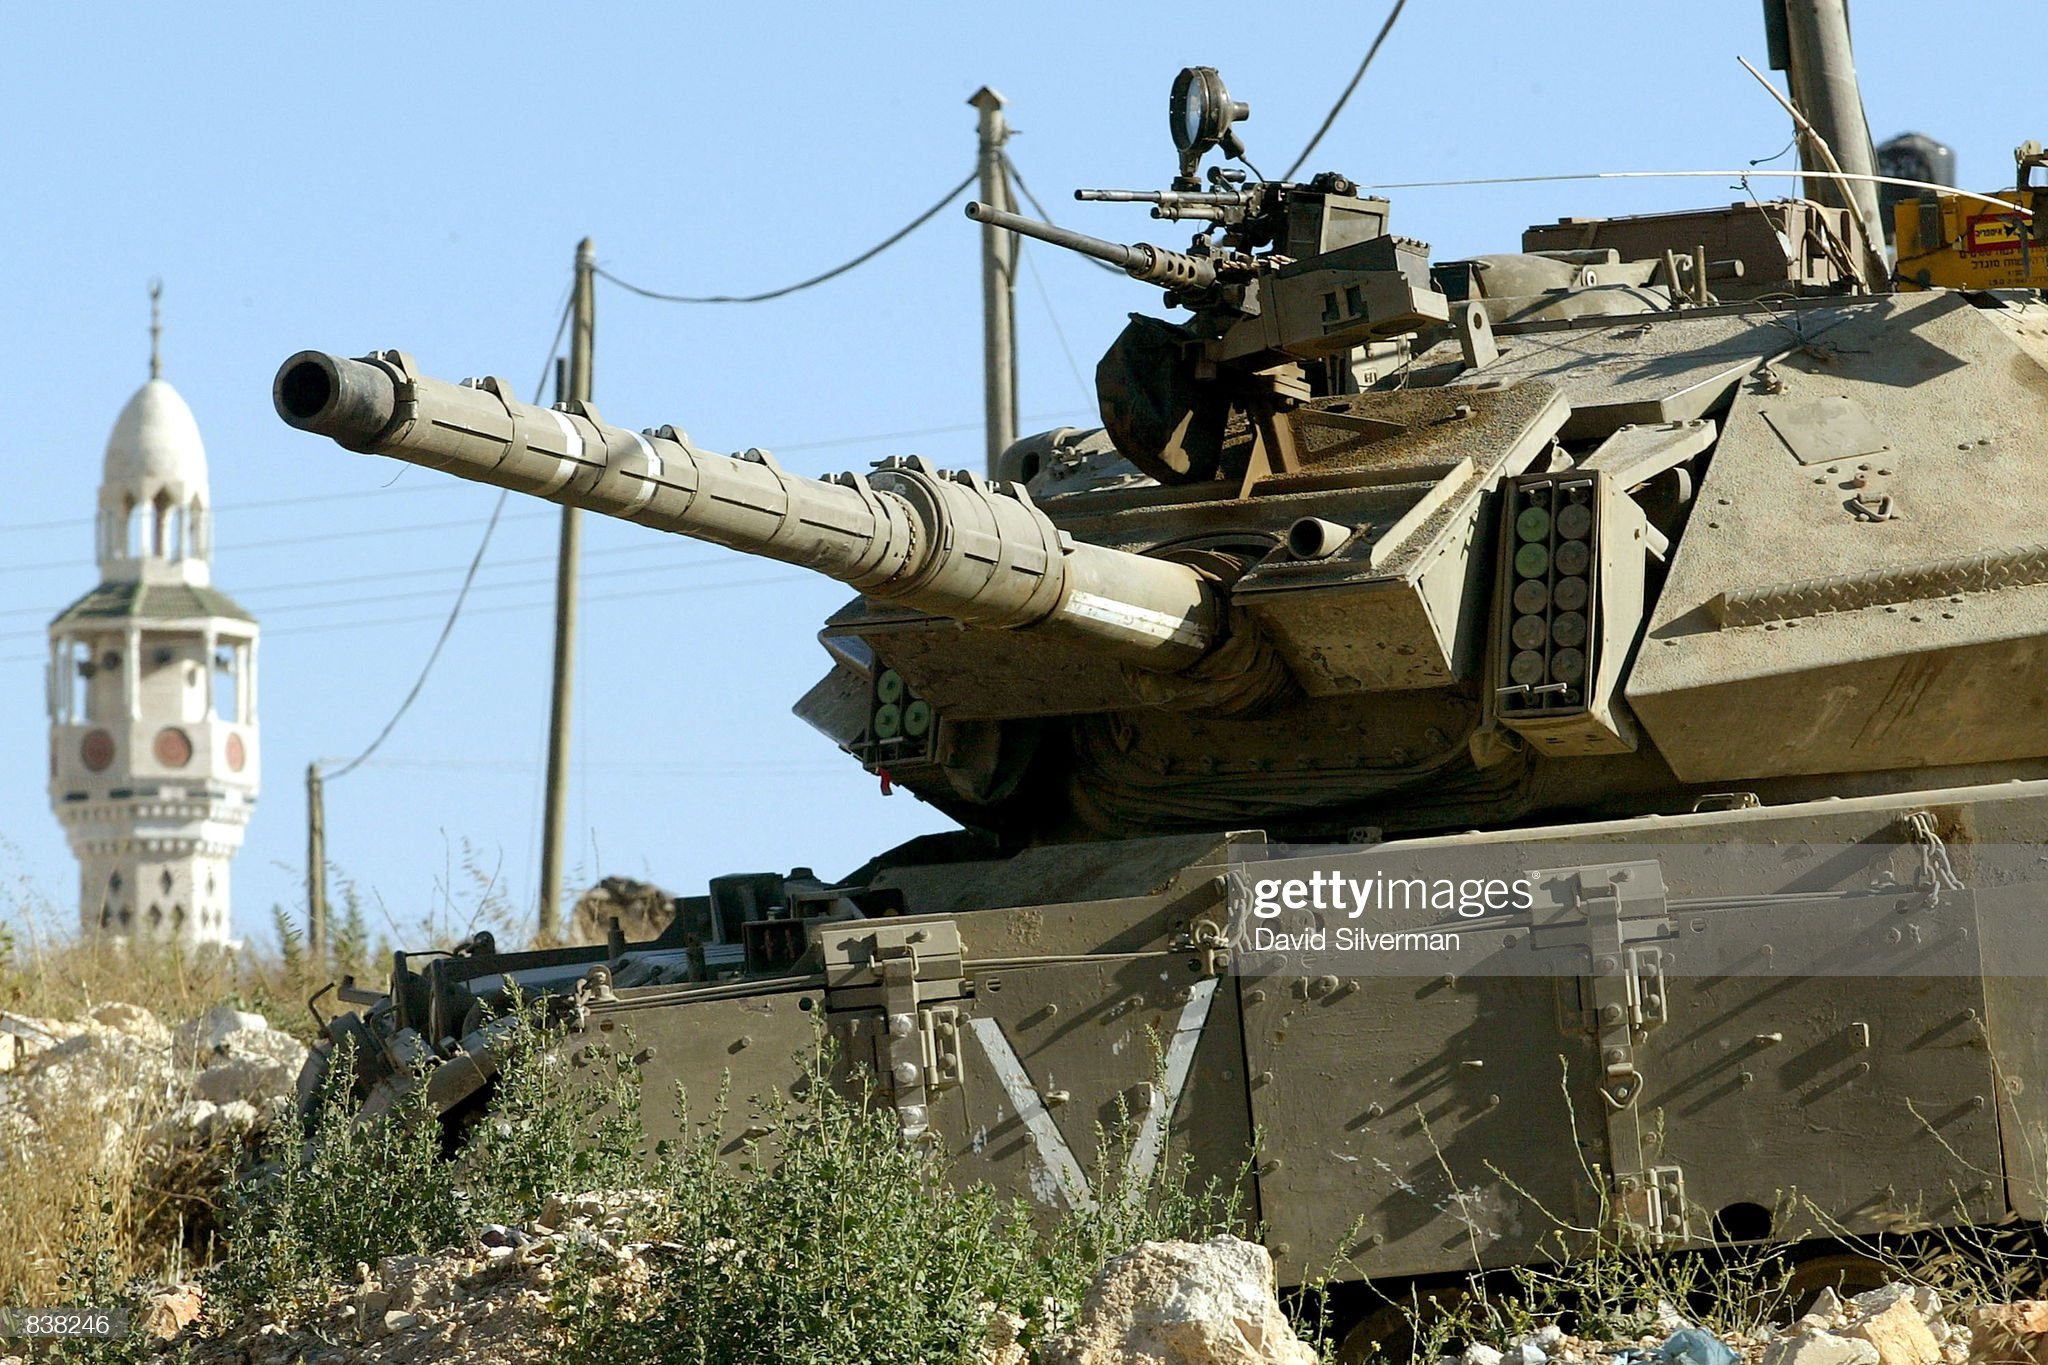 https://media.gettyimages.com/photos/an-israeli-tank-stands-guard-near-the-al-amari-refugee-camp-june-24-picture-id838246?s=2048x2048